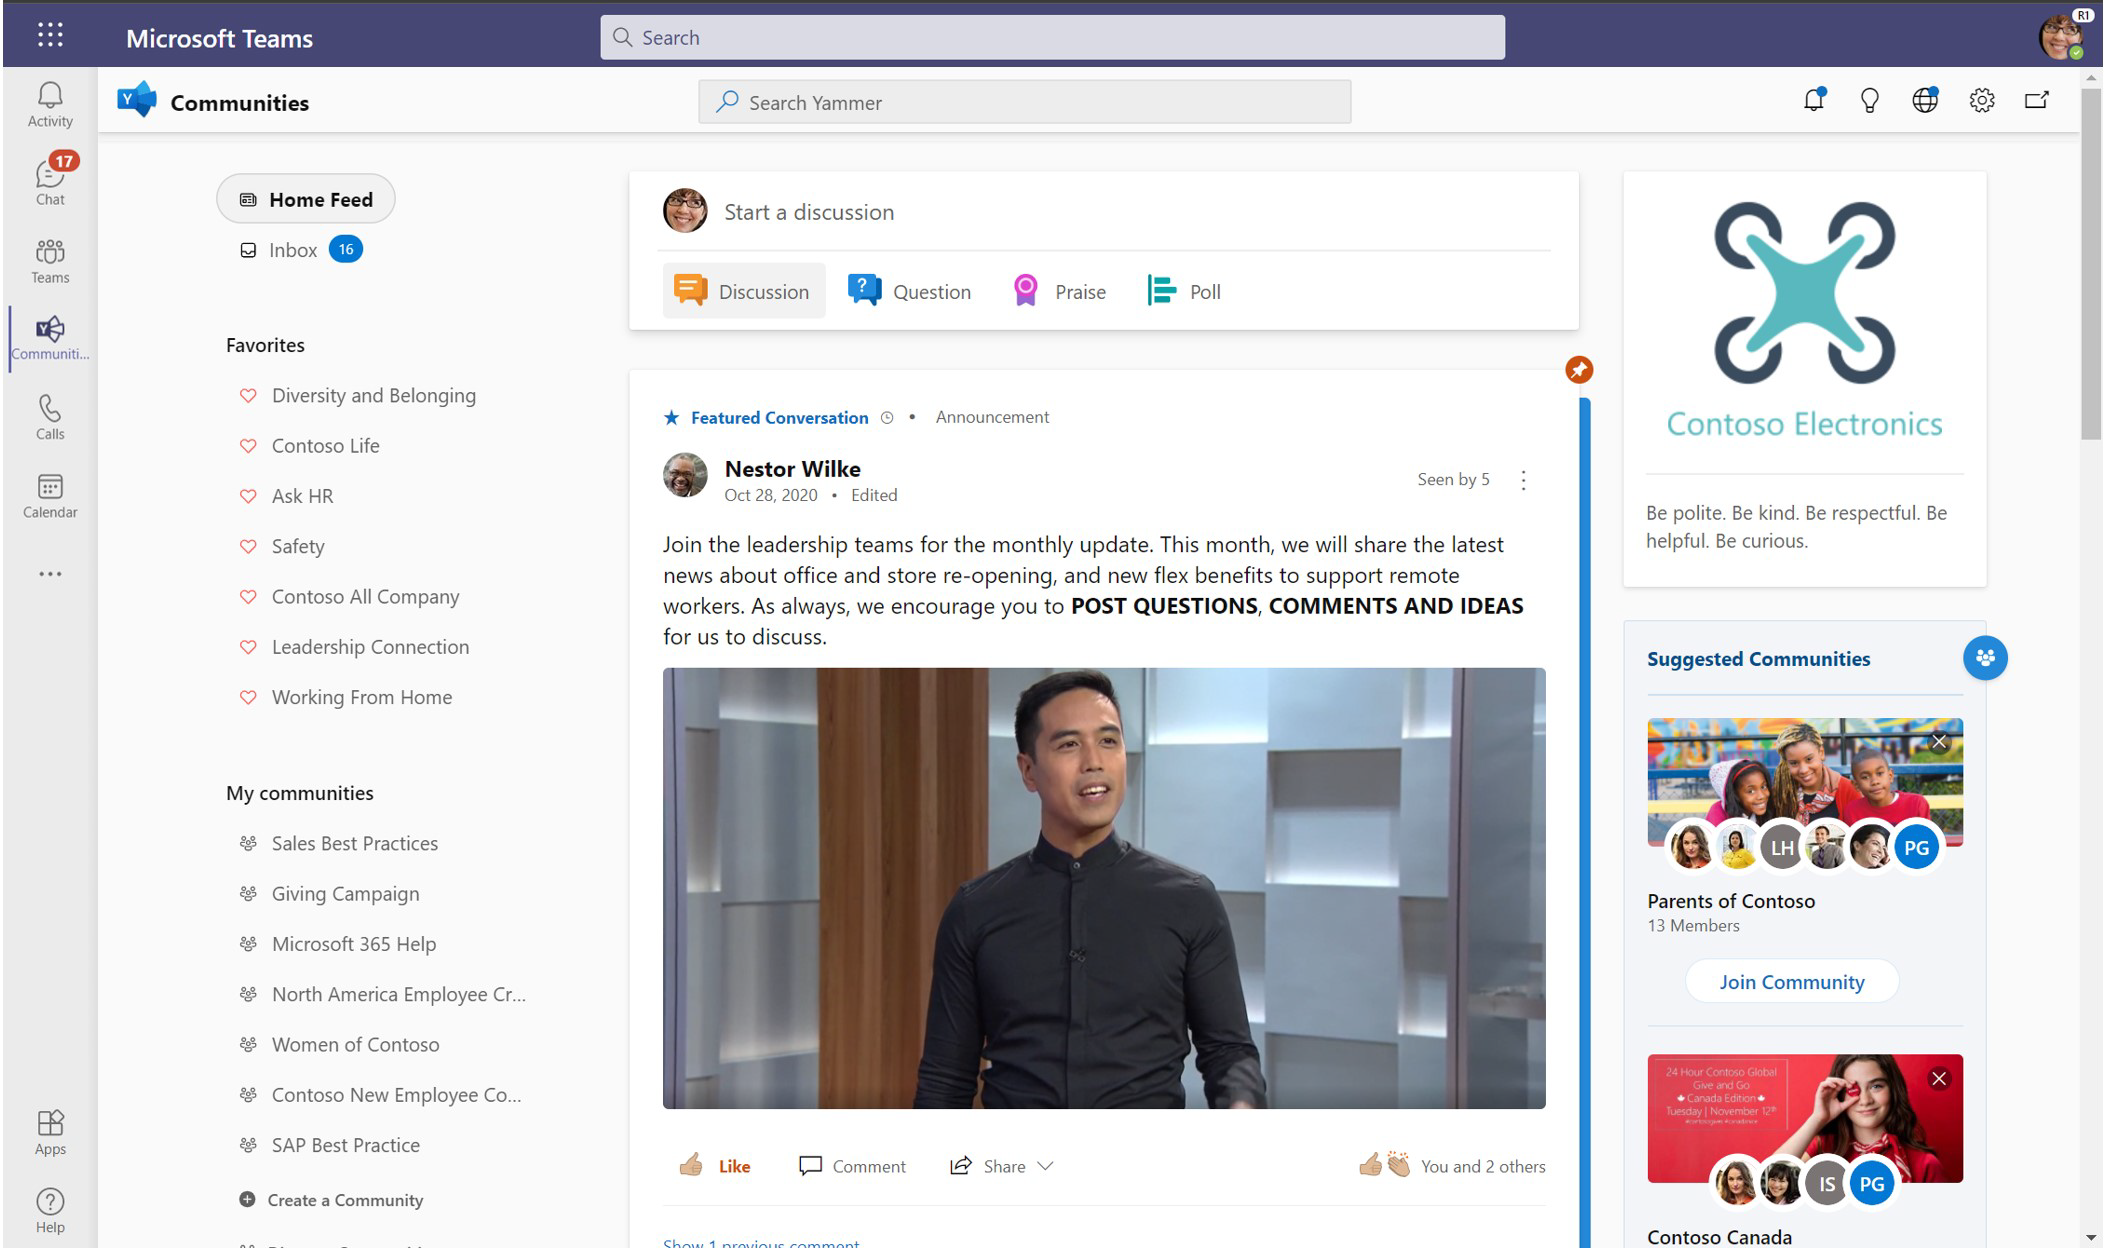 Screenshot showing the full view of the Yammer Communities app in Teams